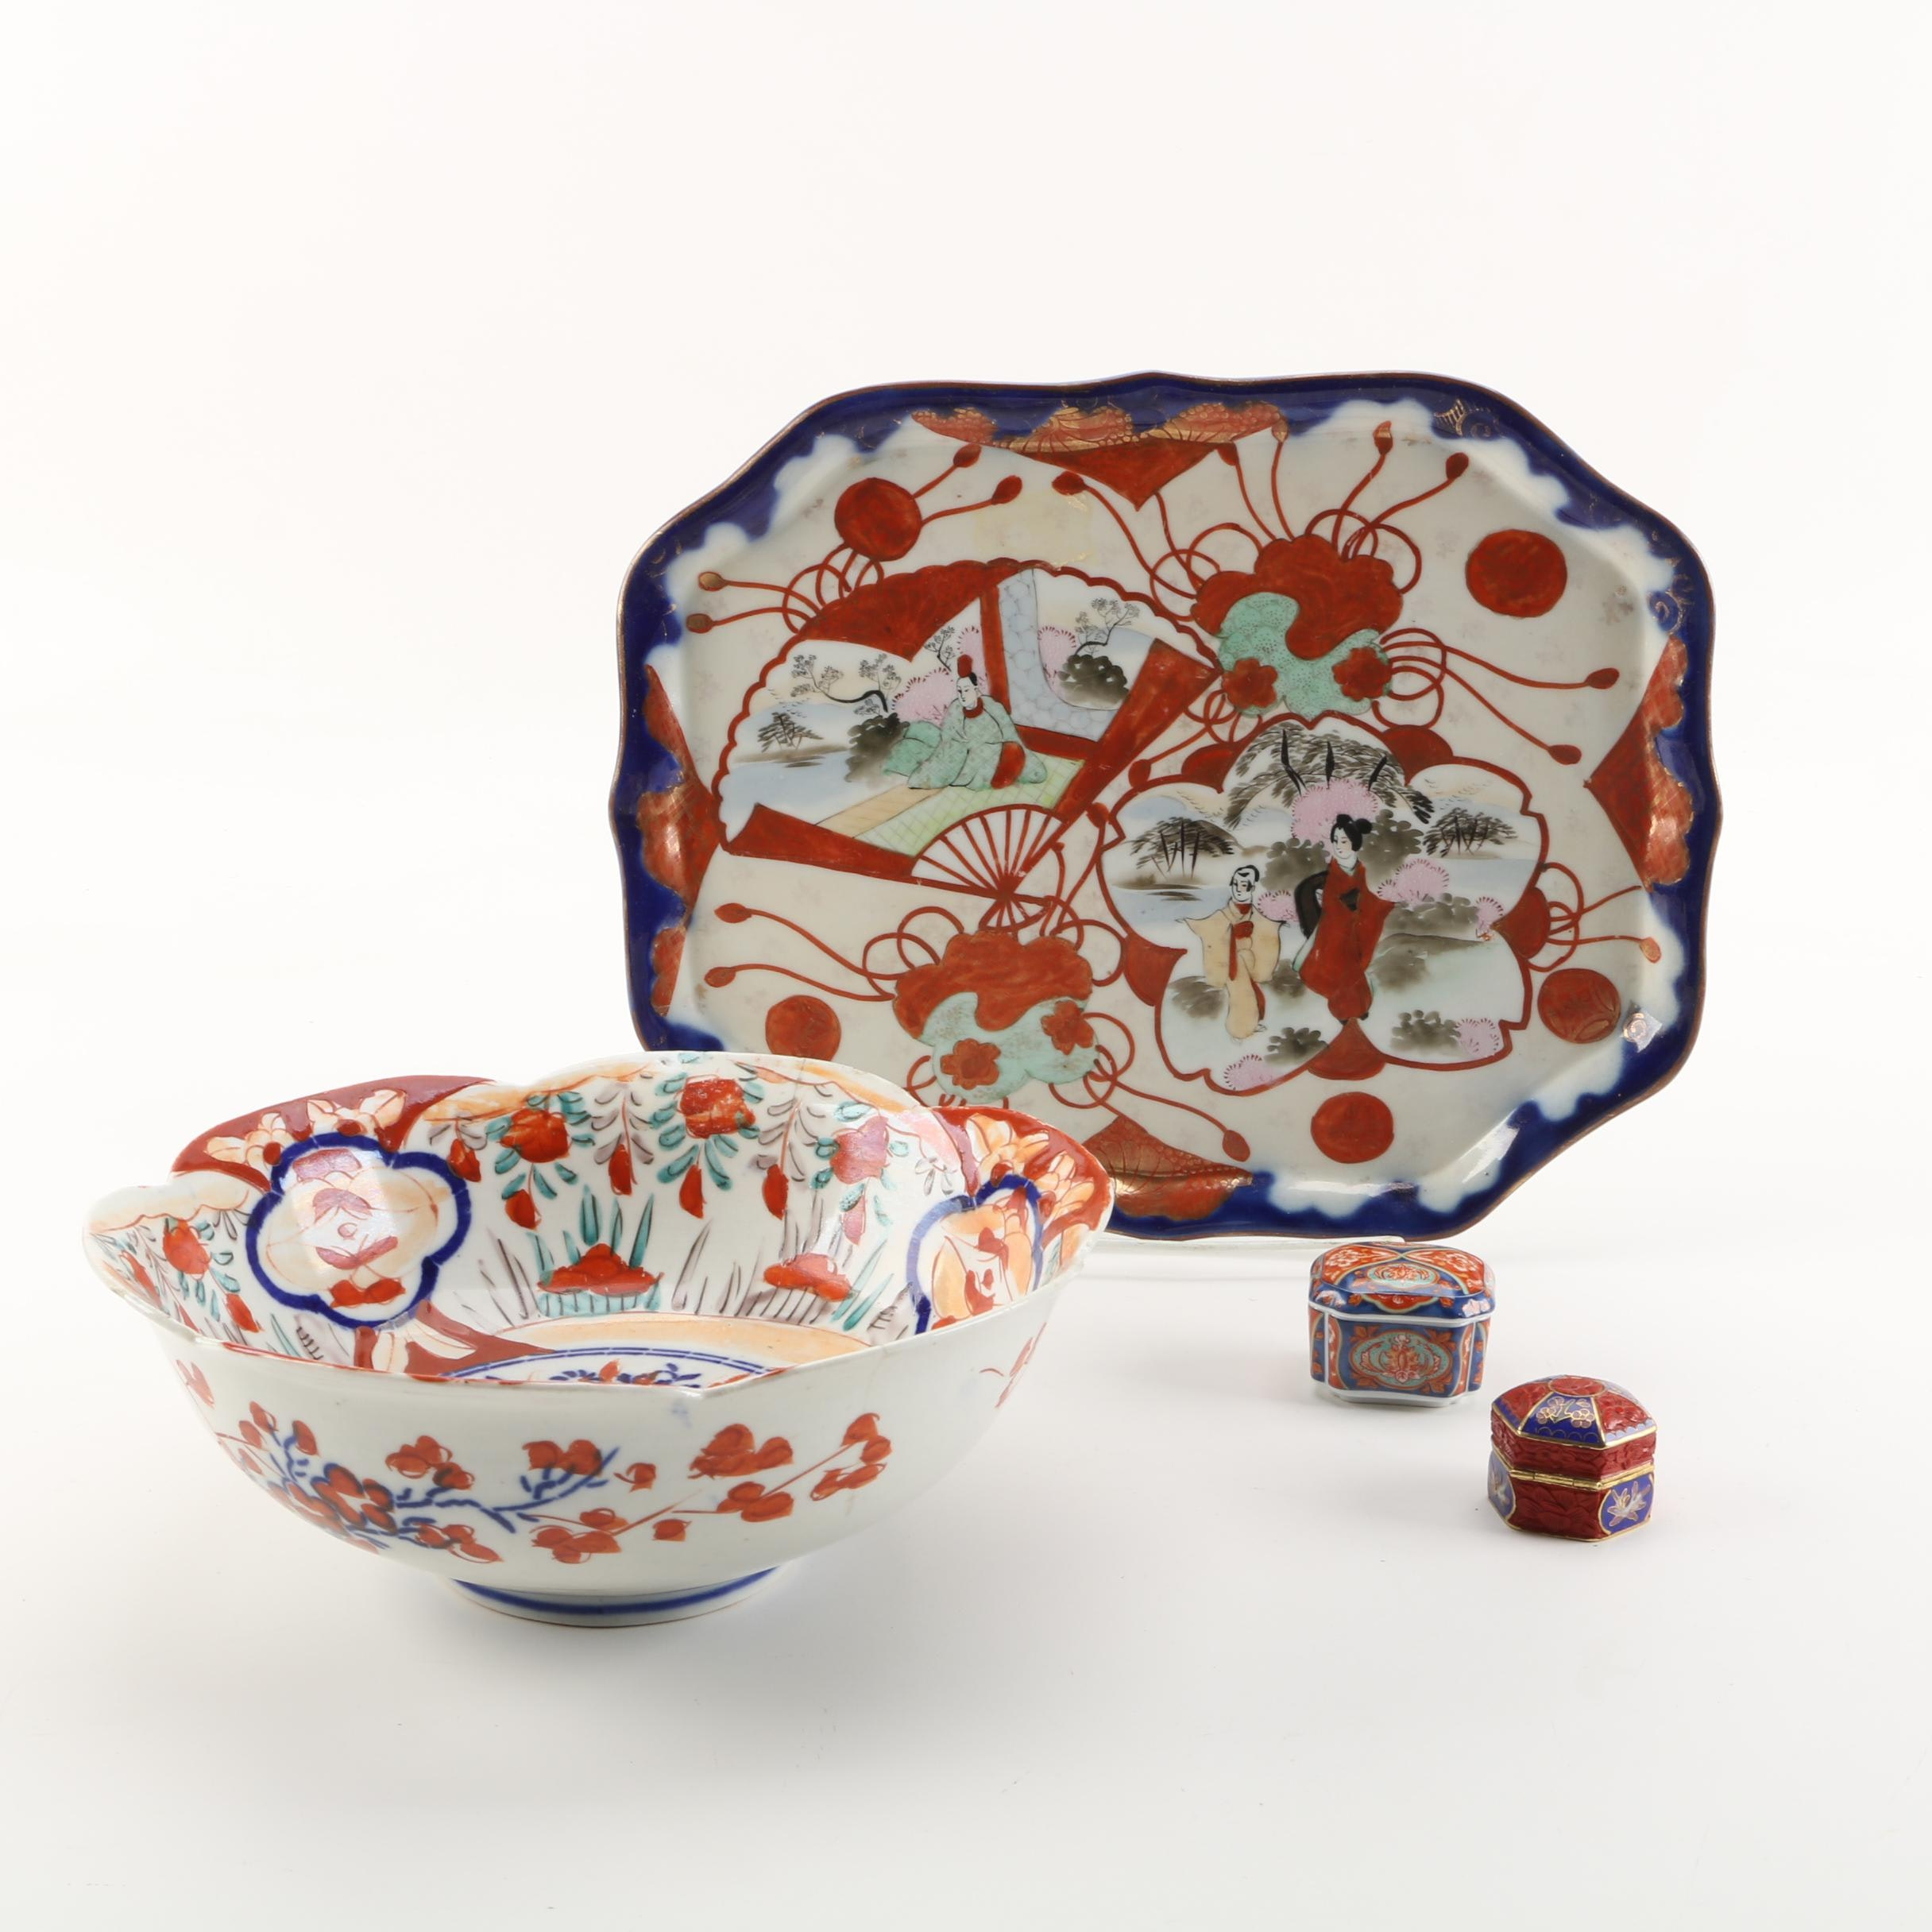 Japanese Meiji Period Imari Bowl with Vintage Kutani Platter and Trinket Boxes